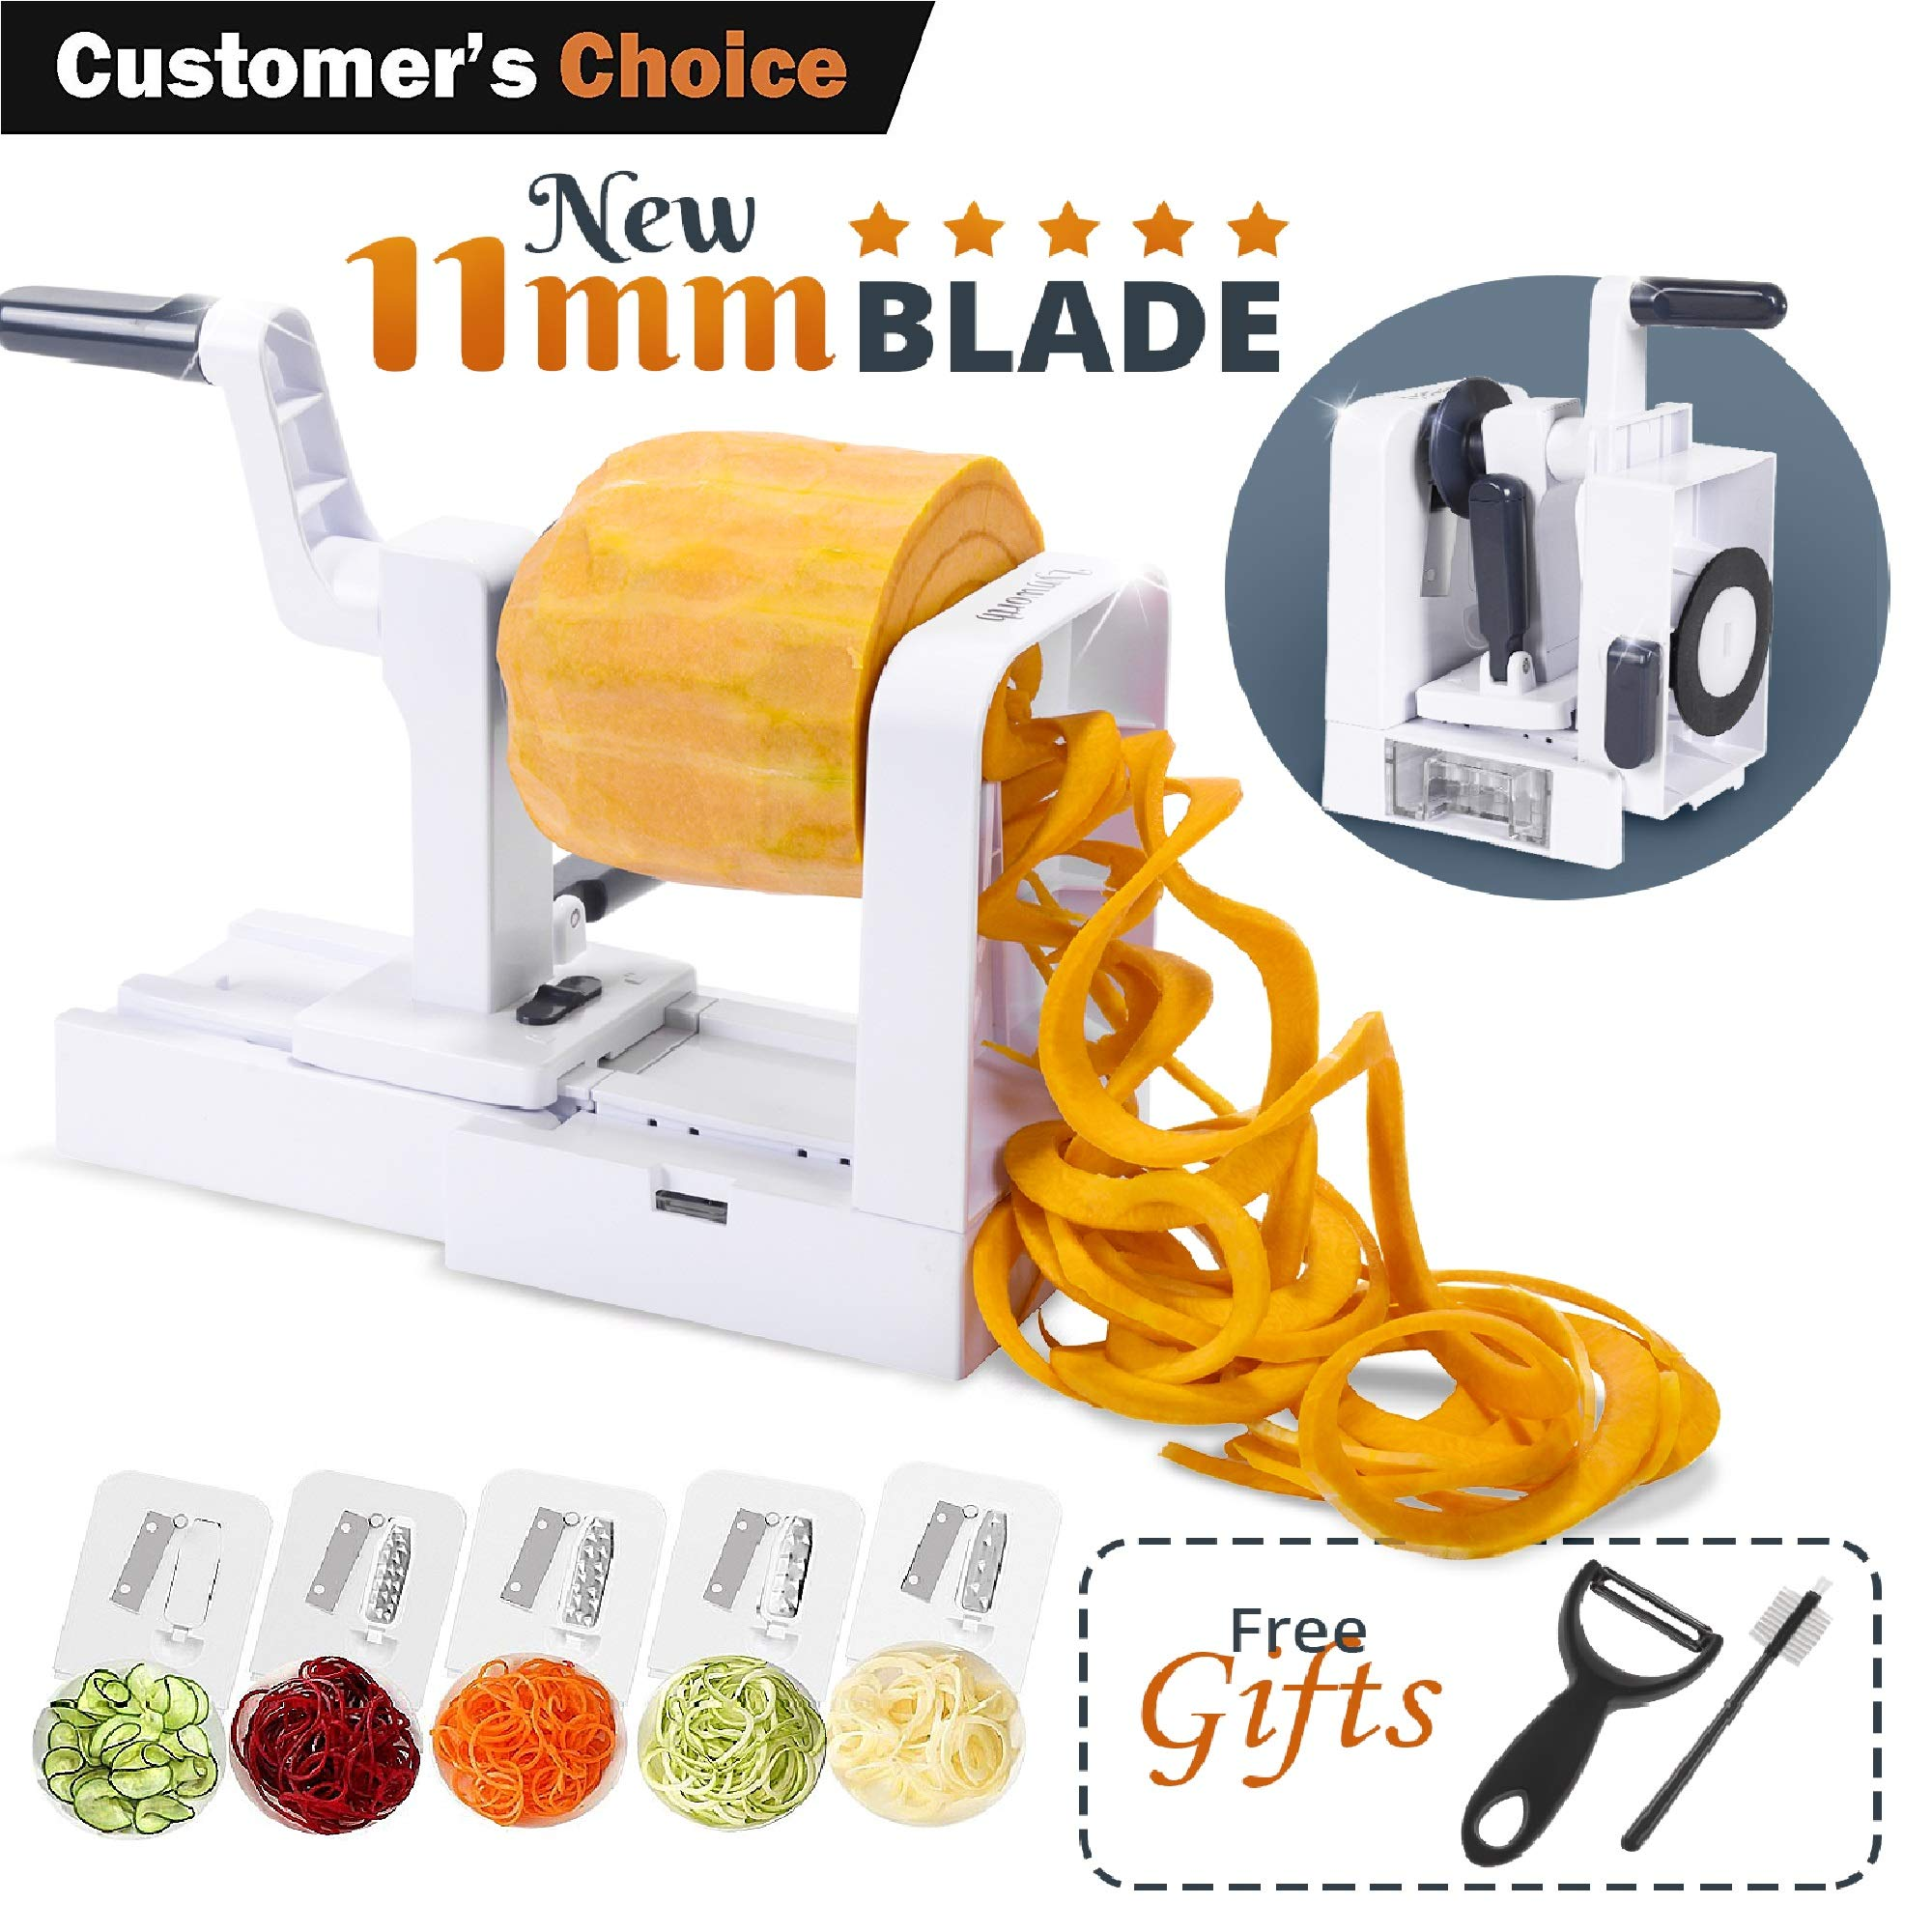 Lynworth Compact Foldable 5-Blade Vegetable Spiralizer: Best Spiral Slicer, Heavy duty Veggie Spaghetti Pasta Zoodle Maker for Healthy Low Carb/Paleo/Gluten-Free Meals With Extra 2 Gifts